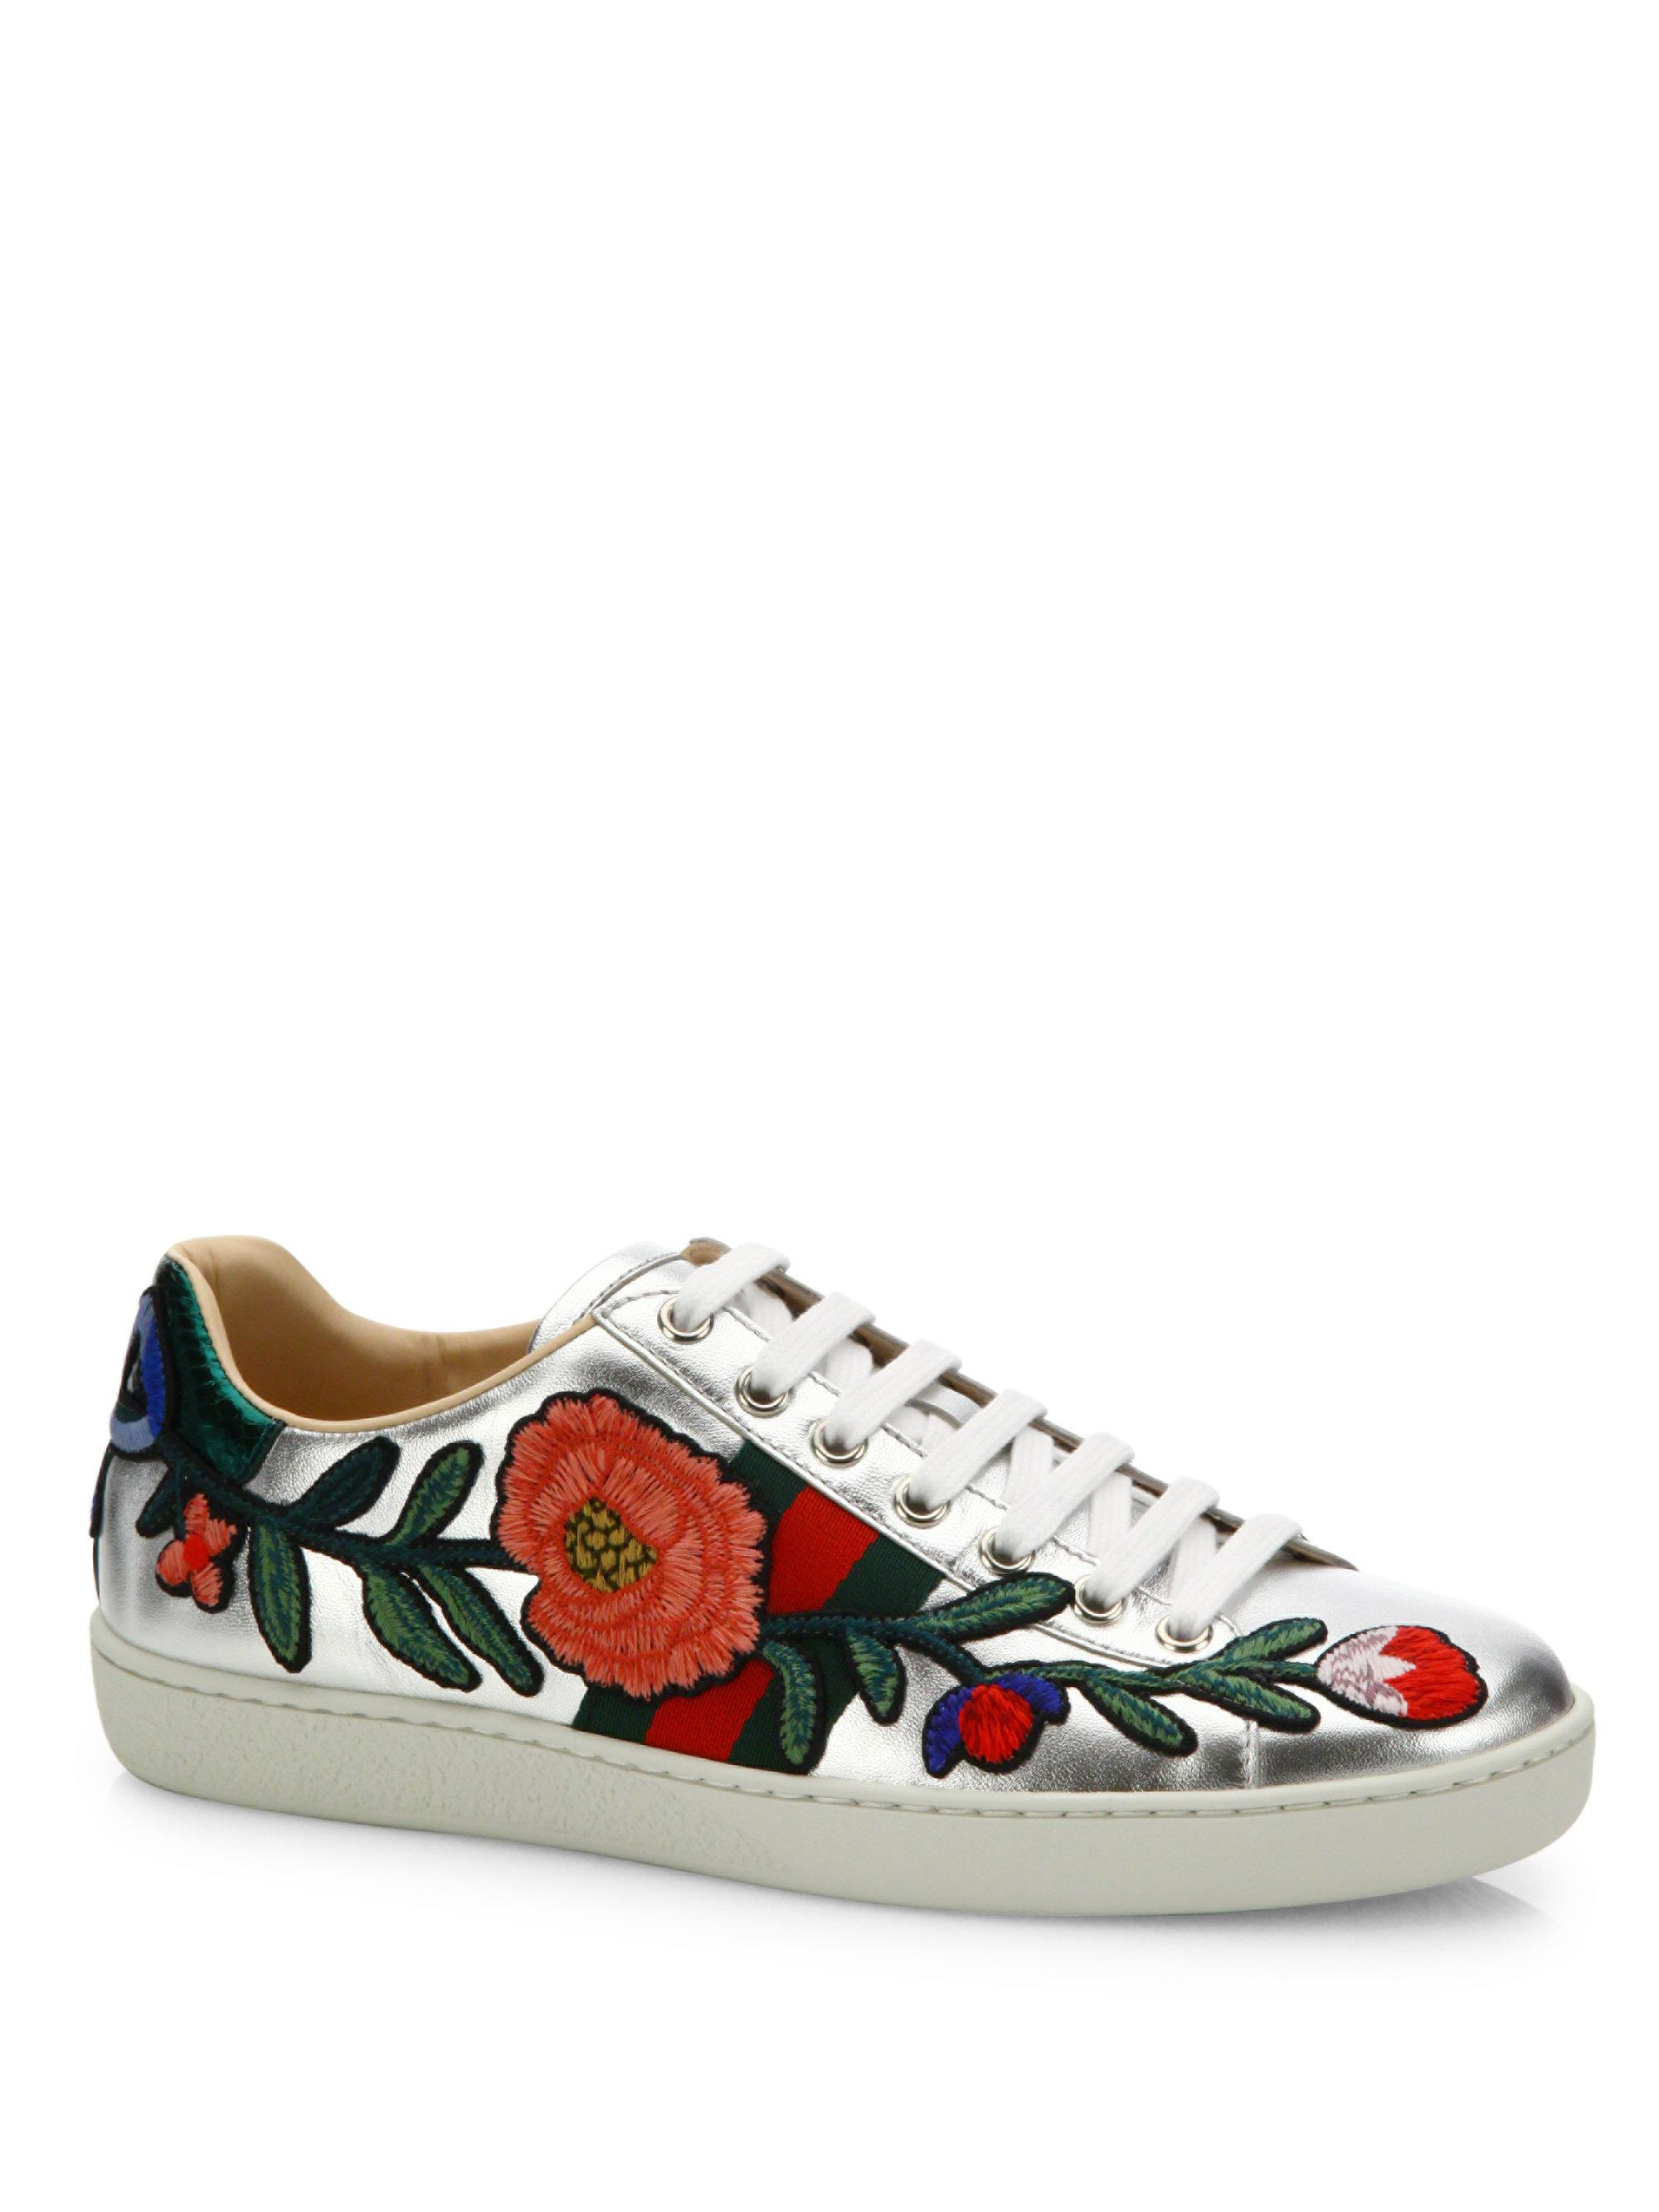 5d4f36b61 Gucci New Ace Floral-embroidered Metallic Leather Sneakers in ...